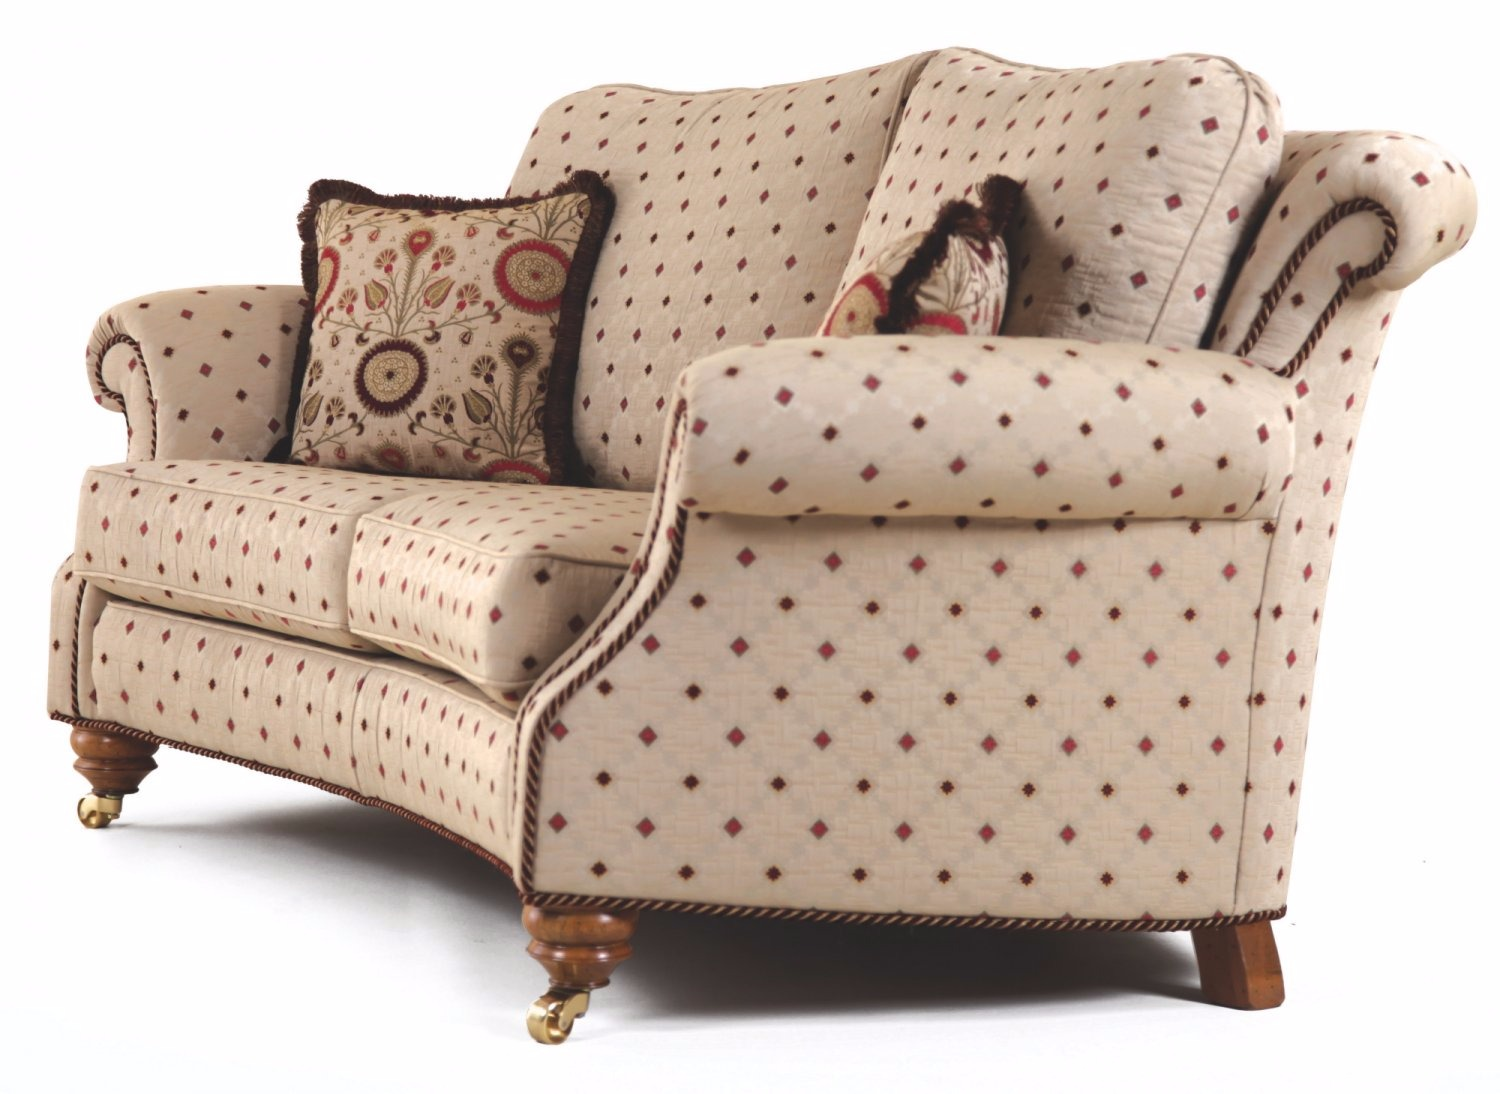 Hedley curved 3 piece suite fabric sofas in stock from for Sofa bed 3 piece suite